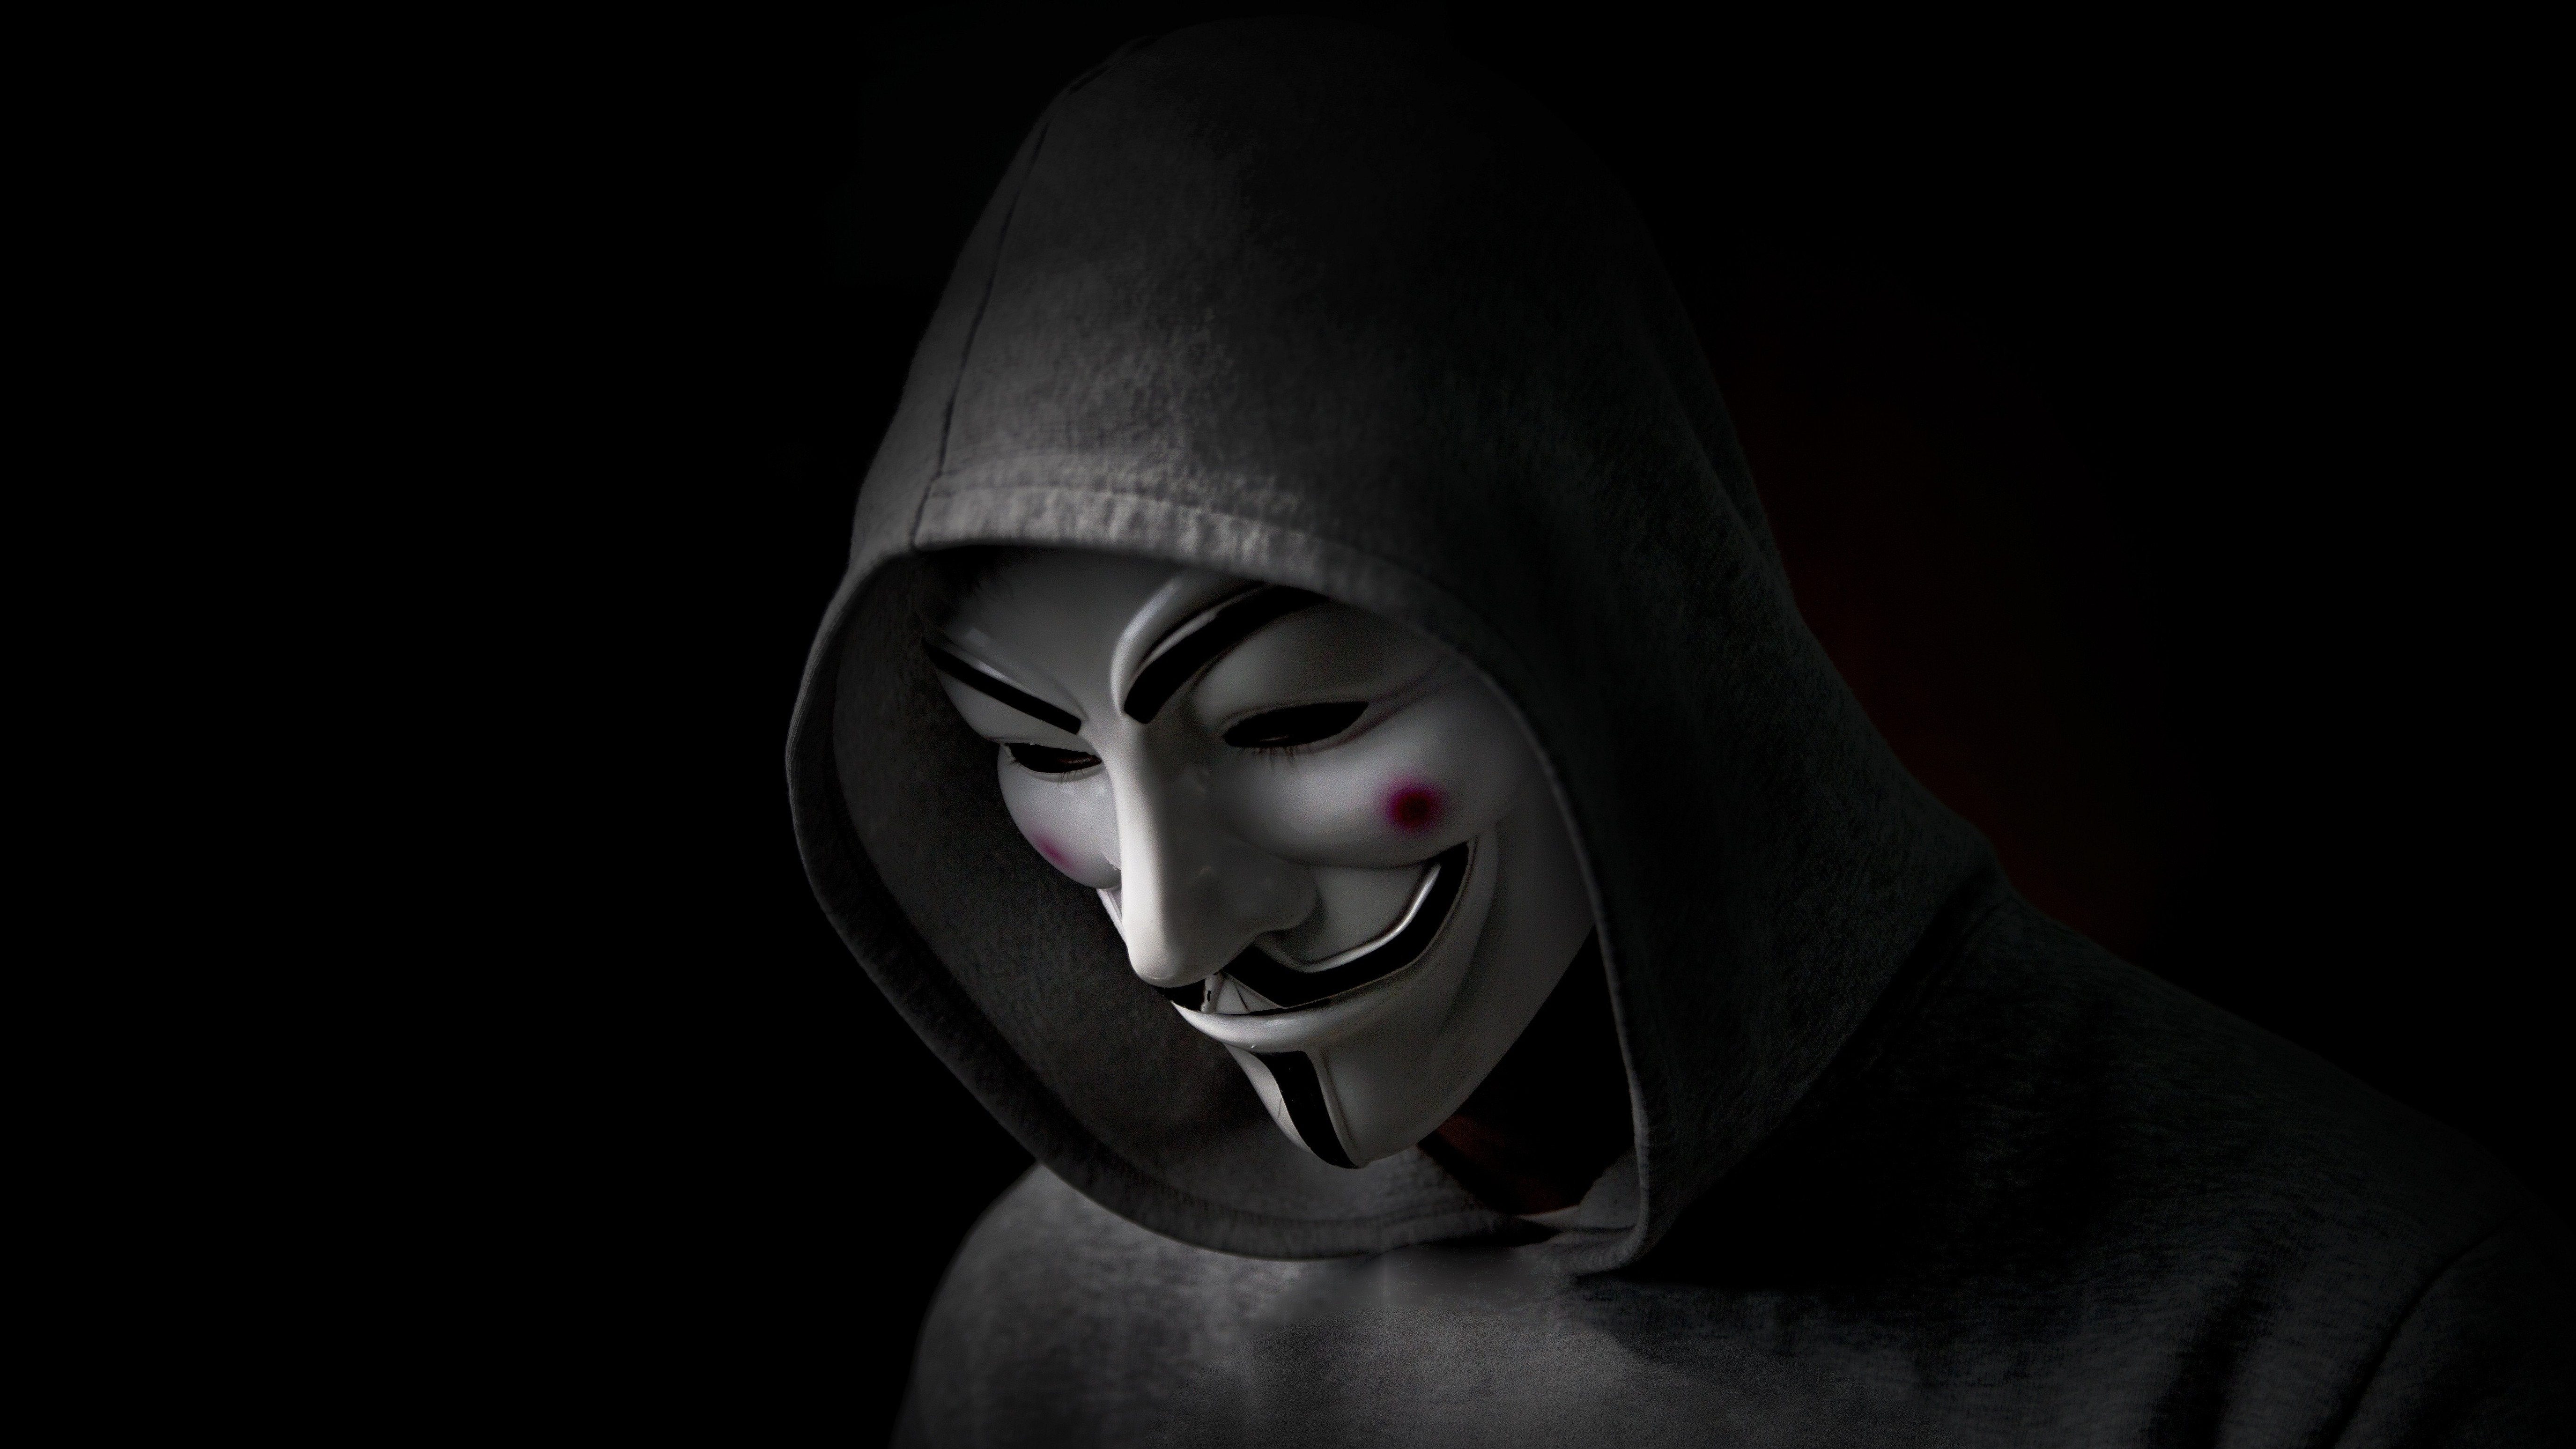 hacker hoodie anonymus wallpapers 4k computer backgrounds